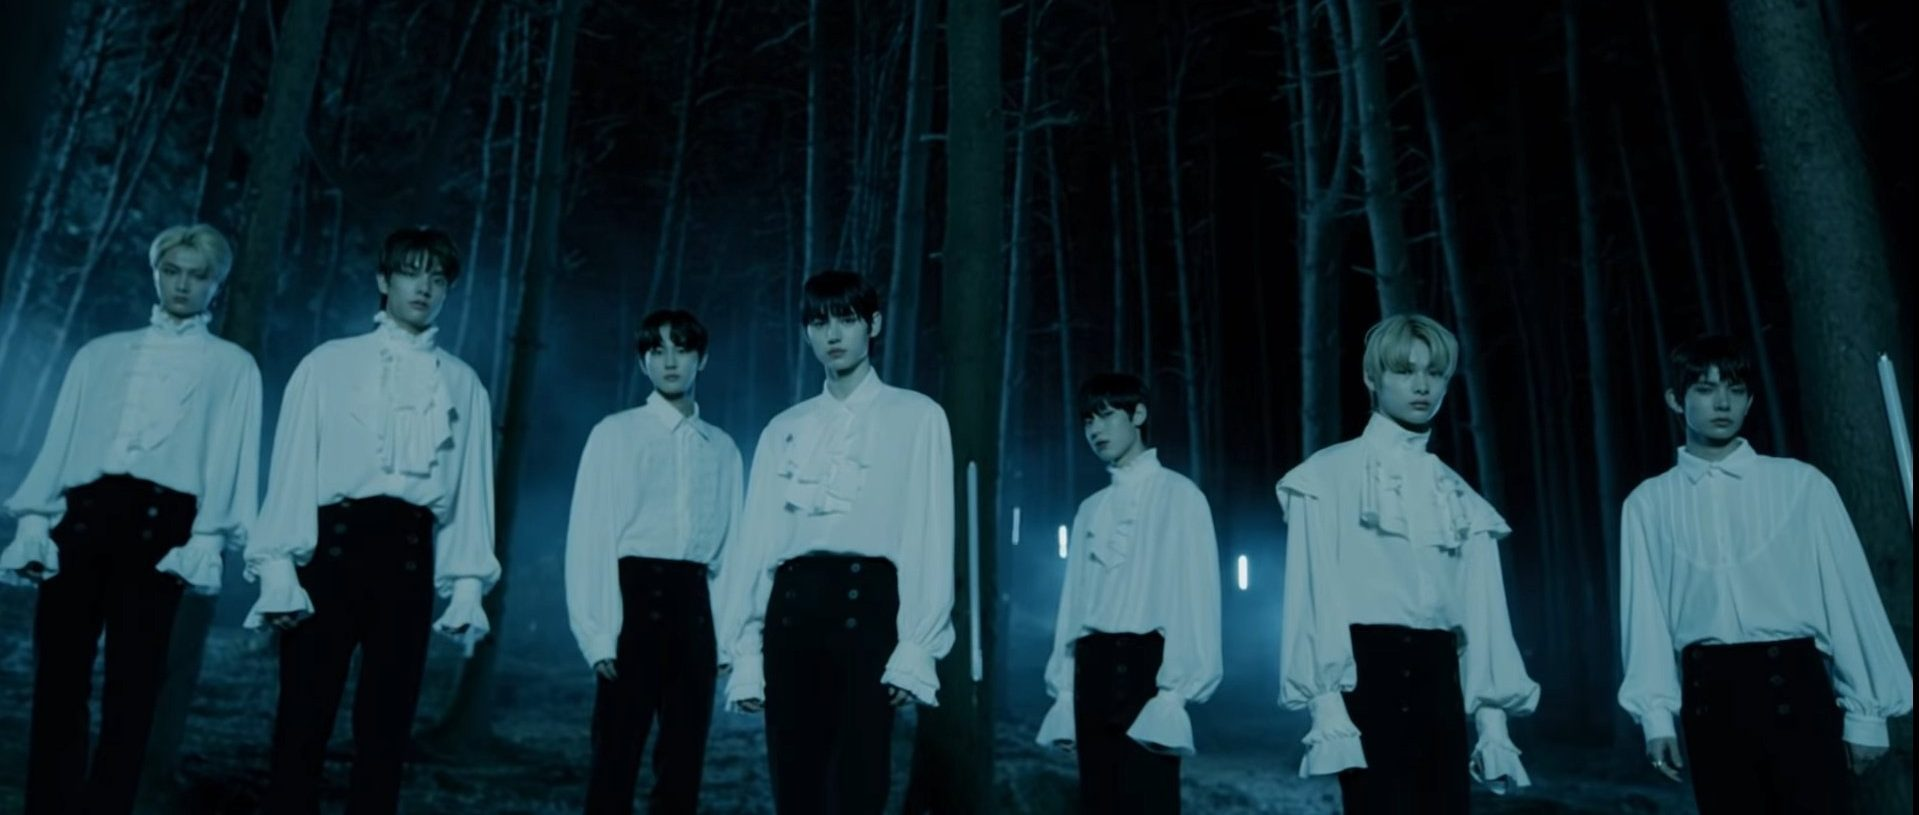 ENHYPEN Gears Up For Their Much-Awaited Debut